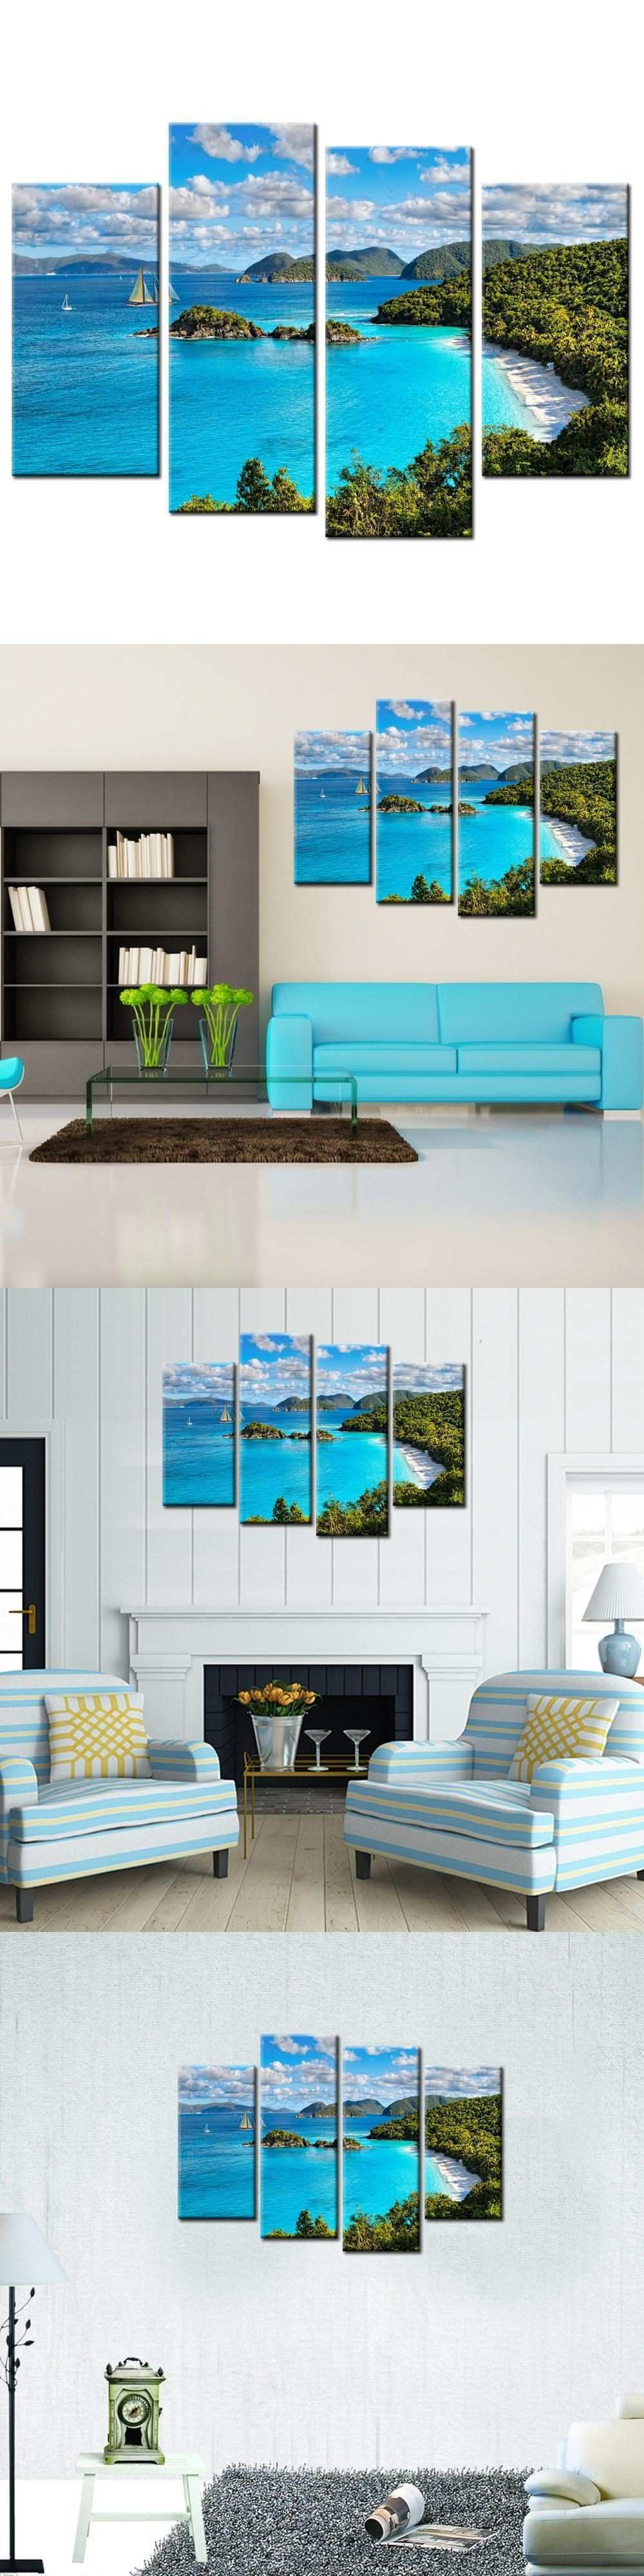 4 Panels Spray Wall Painting Blue Sky And White Clouds Seaview